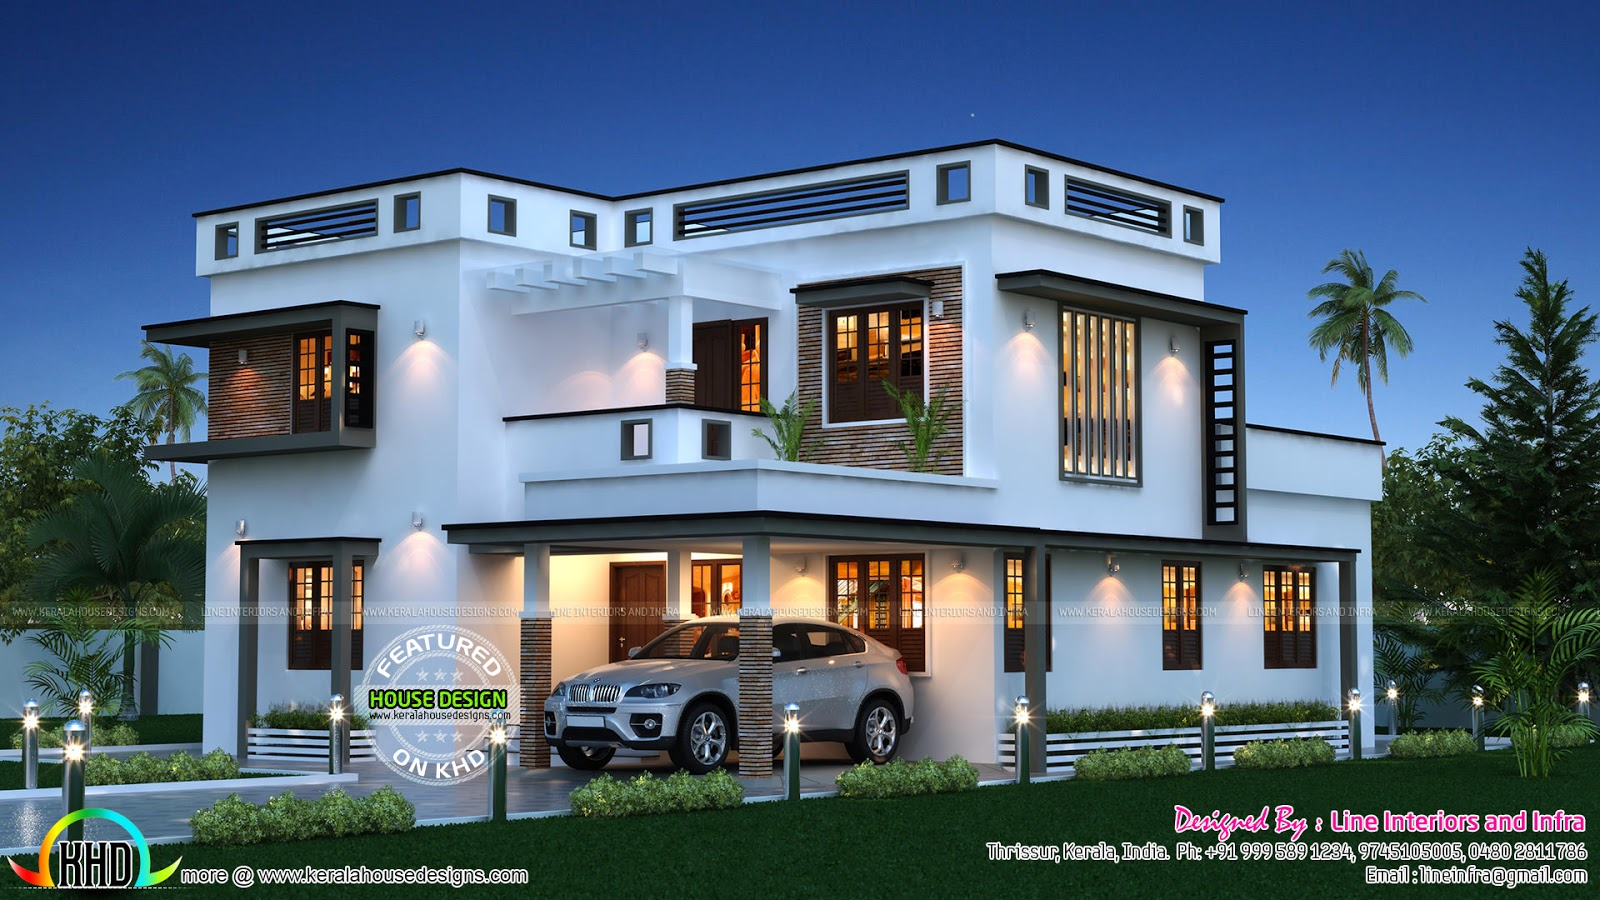 Beautiful 1600 sq ft home kerala home design and floor plans for 800 sq ft house plans kerala style